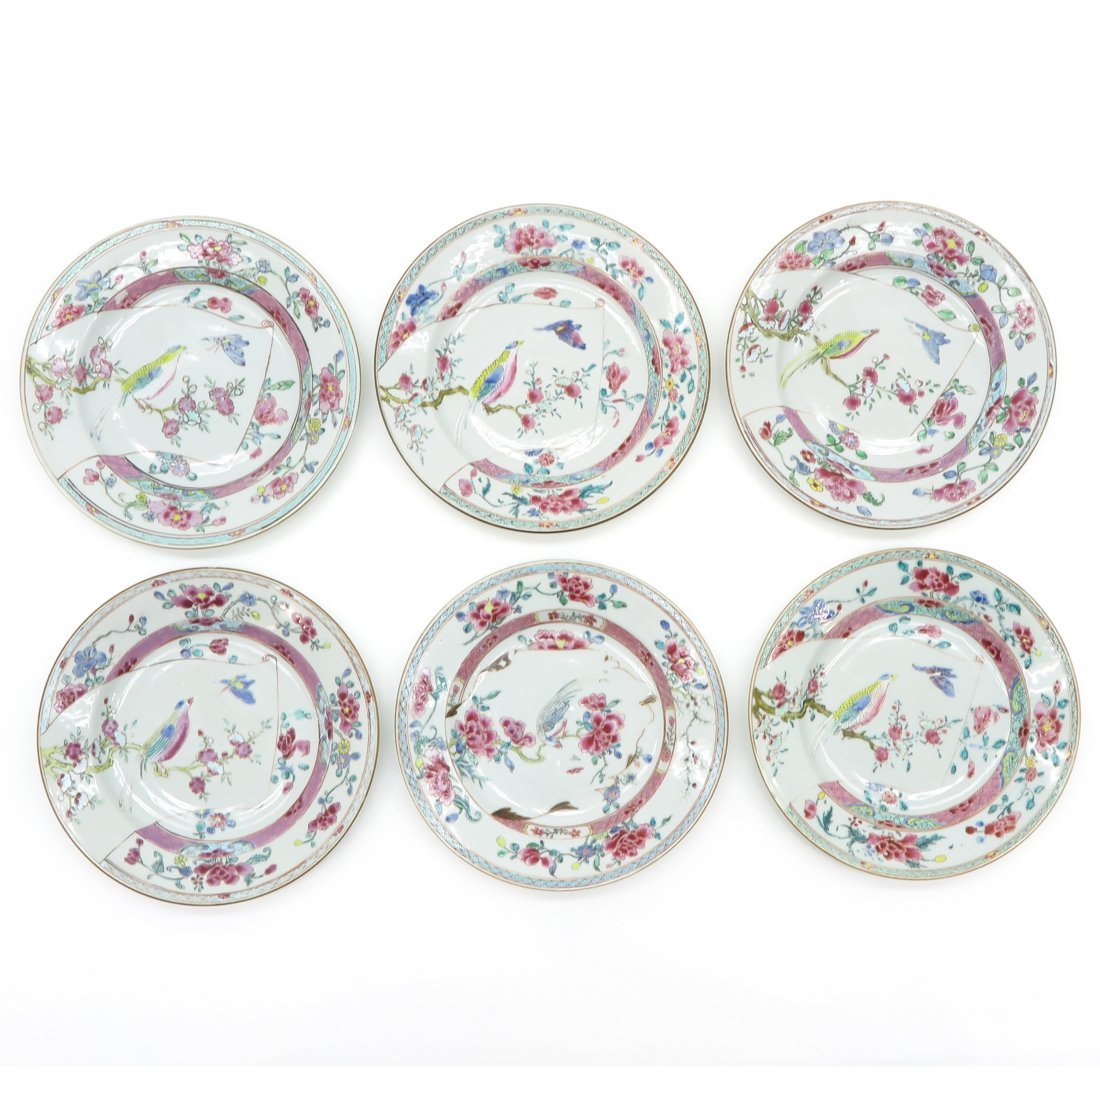 Lot of 6 18th Century China Porcelain Plates